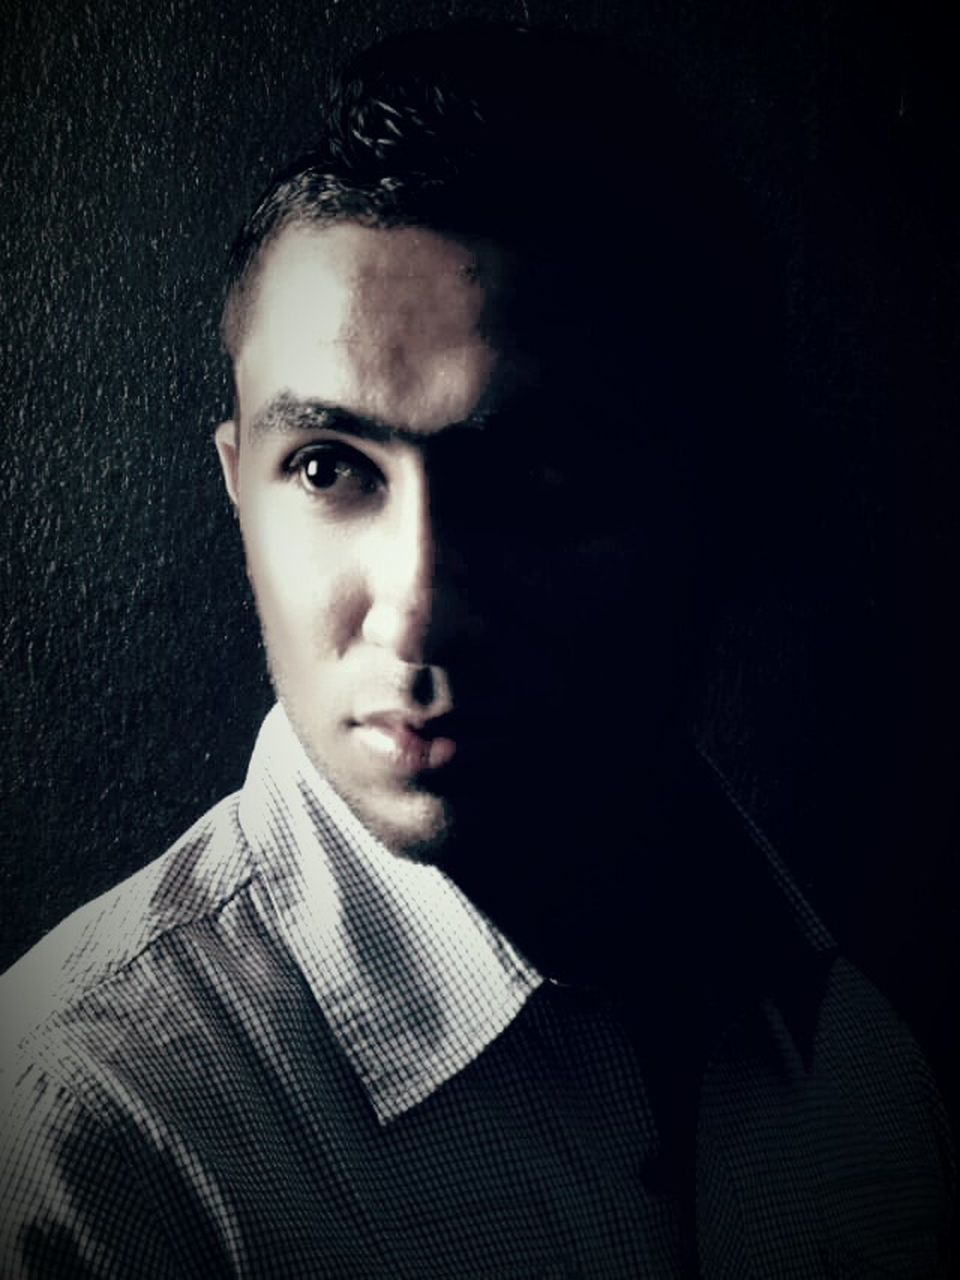 portrait, young adult, front view, one person, looking at camera, headshot, studio shot, well-dressed, real people, close-up, black background, indoors, one man only, only men, day, people, adult, adults only